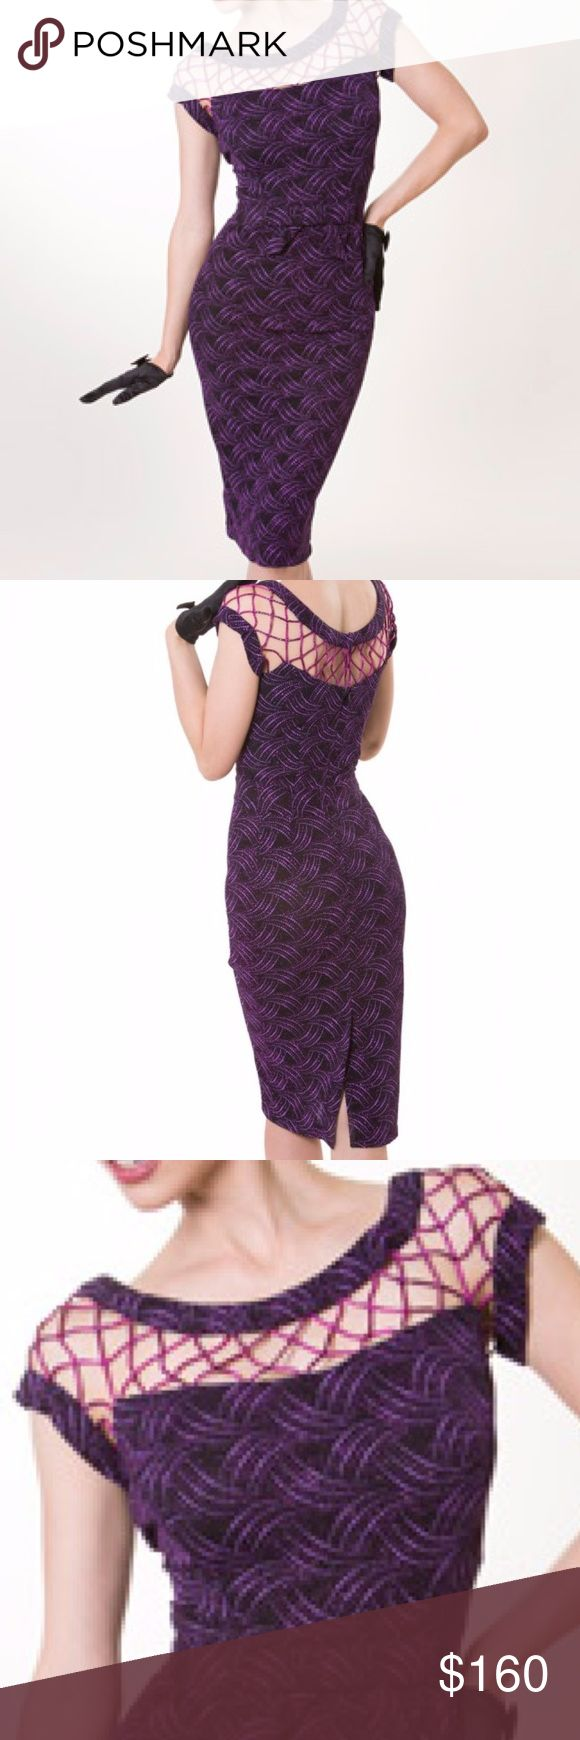 "Tatyana Tempest Storm Seduction Bead Pencil Dress Brand New with Tags SOLD OUT IN STORES Seduction by Tatyana Tempest Strorm Collection This dress features a short sleeved caged detailed neckline with a bow accessorized empire waist. This dress is purple in color and fully beaded.  From the Tempest Storm collection Three eye hook closures are above a  hidden metal zipper and ends with a striking slit. Lined.  Made of a nylon/spandex blend/beaded.  Dry-clean only. 2XL Bust 42""-44"" Waist…"